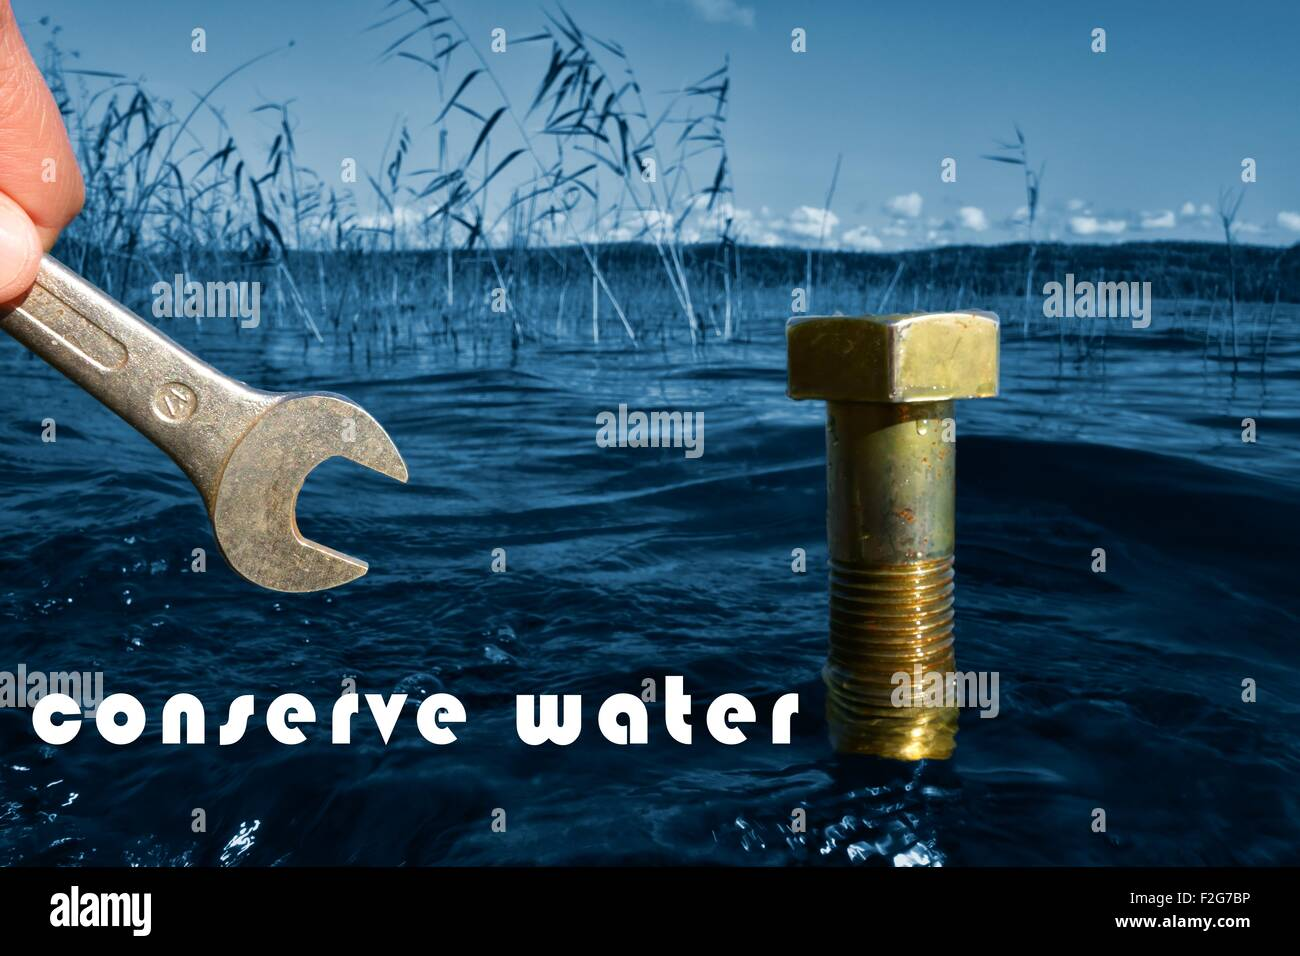 conserve water conceptual image - Stock Image